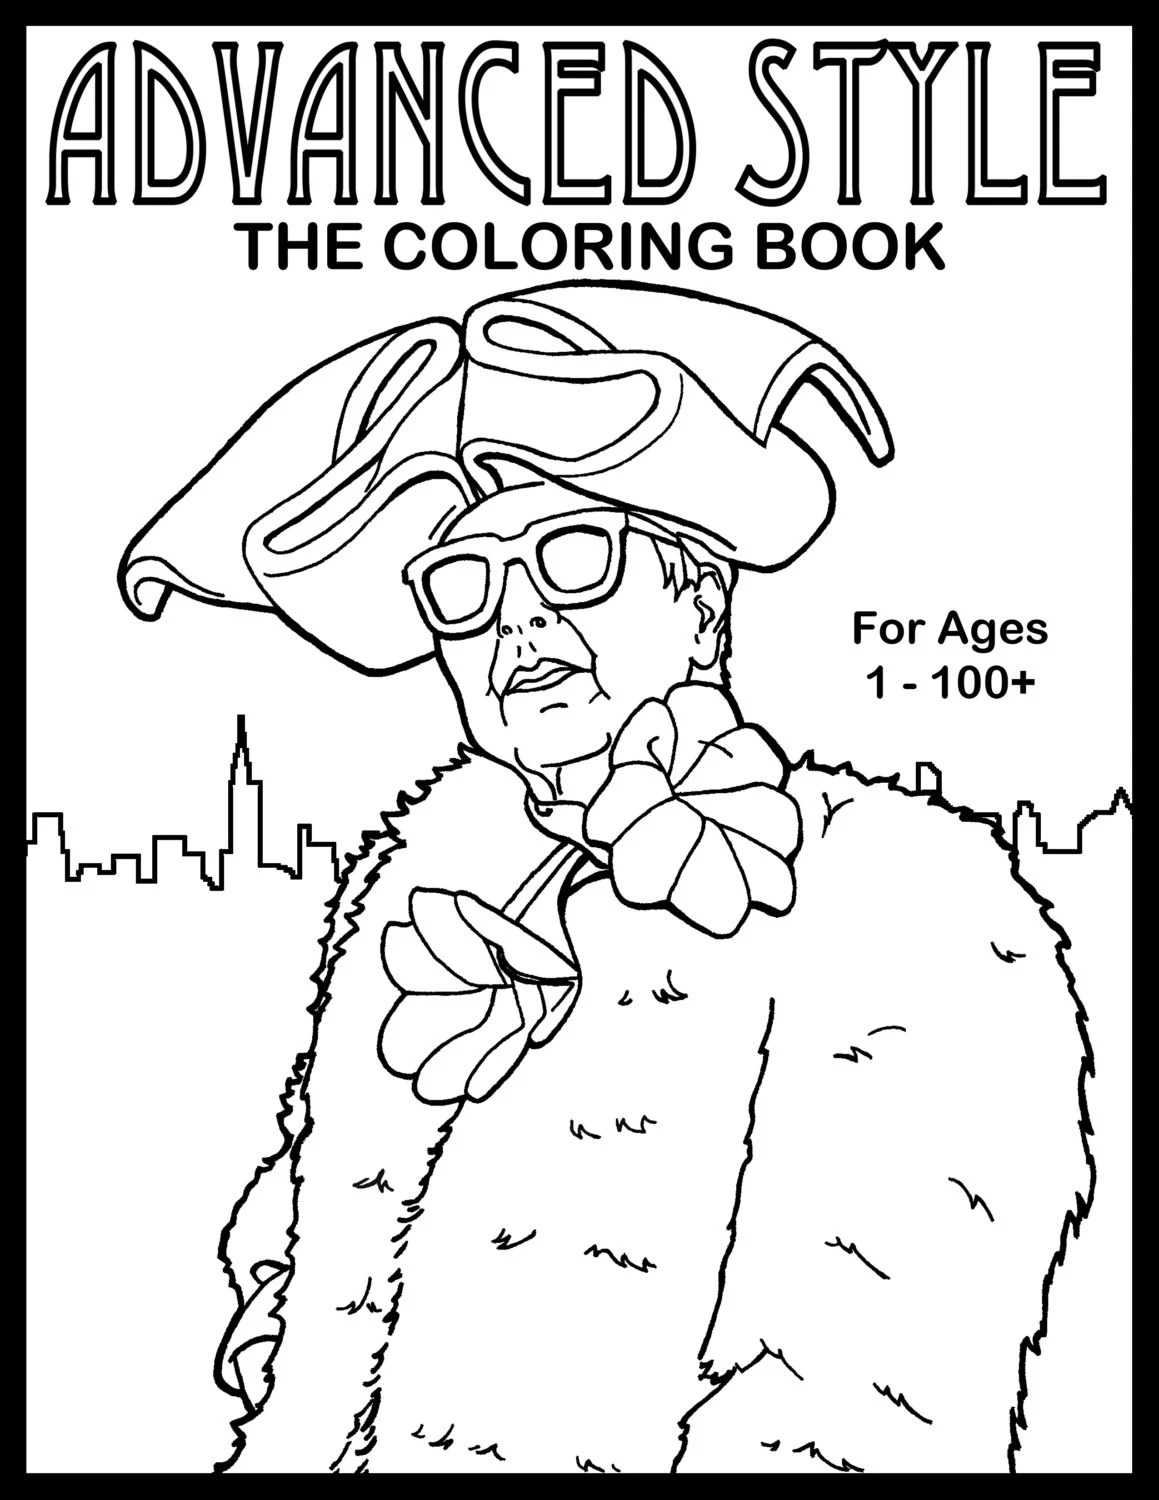 Advanced Style: The Coloring Book Illustrations of Stylish